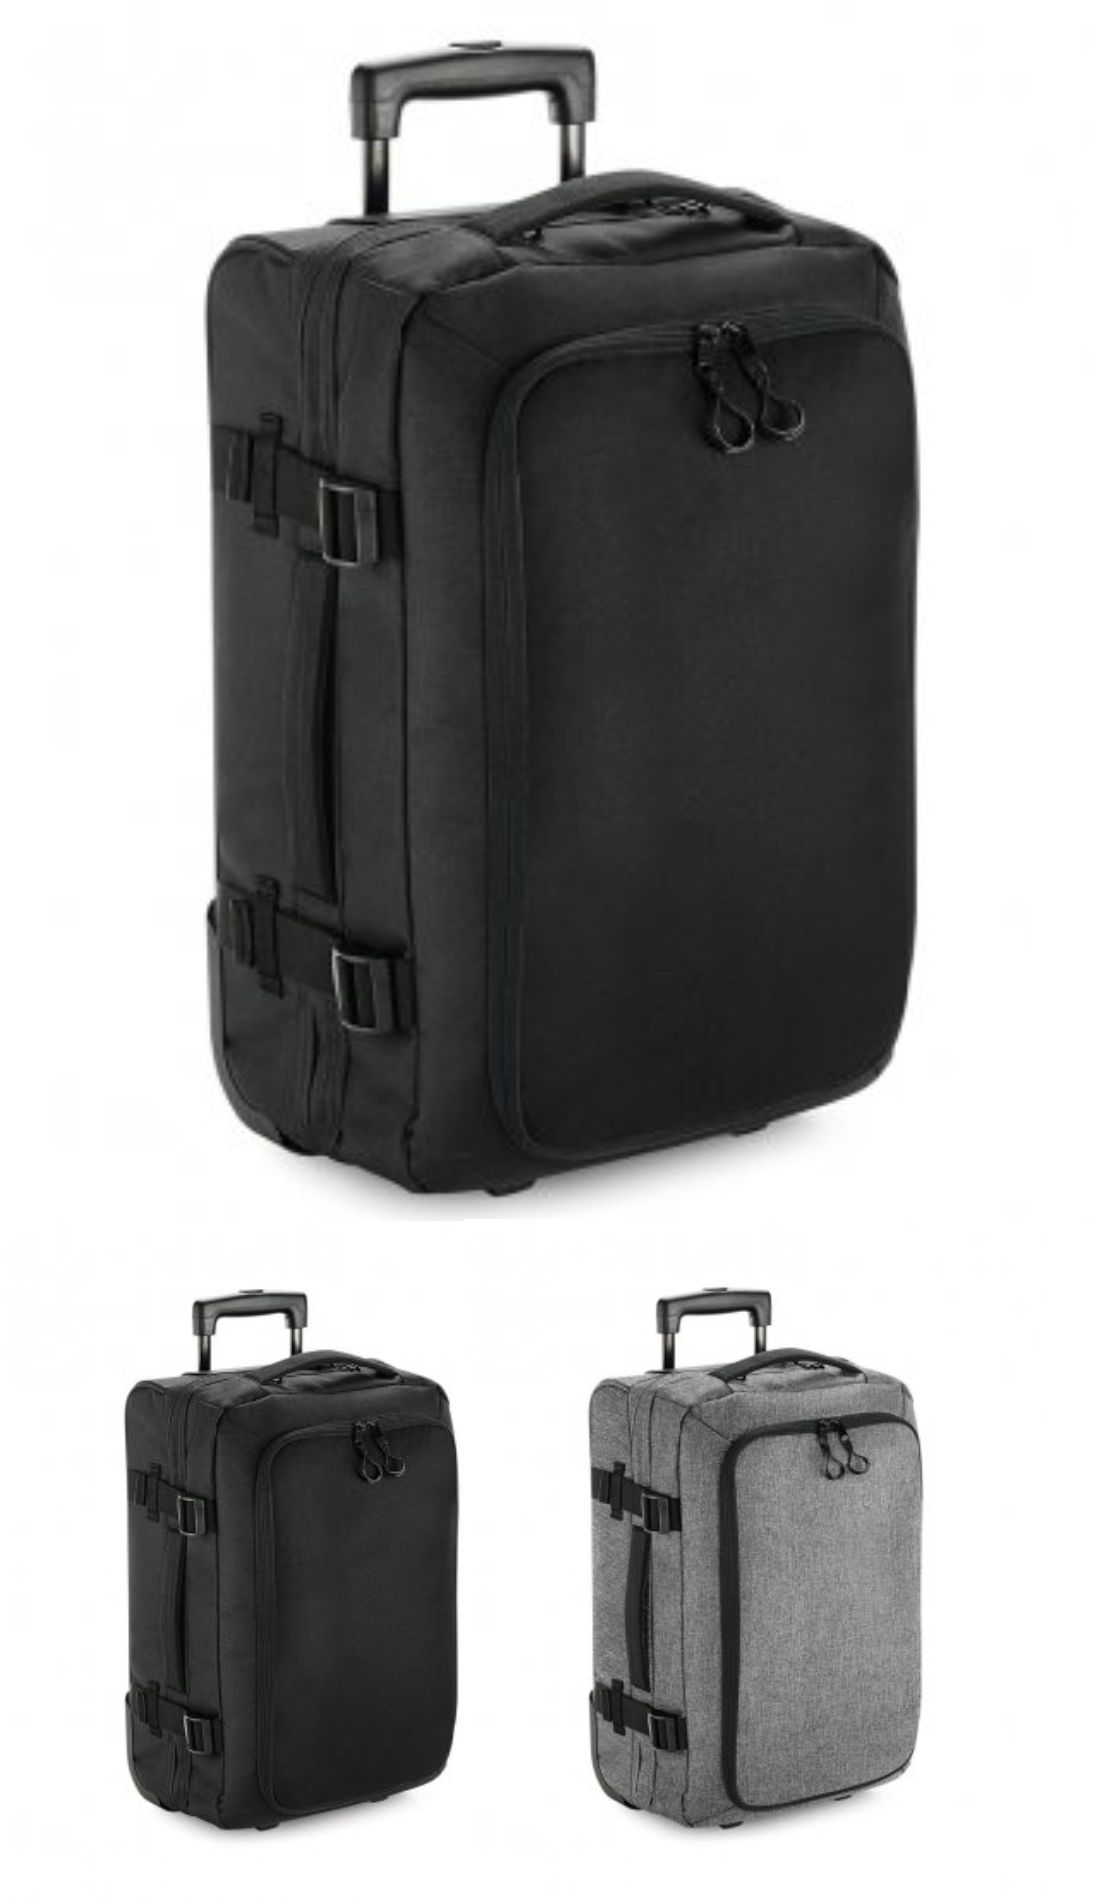 BG481 Bagbase Escape Carry-on Wheelie Bag